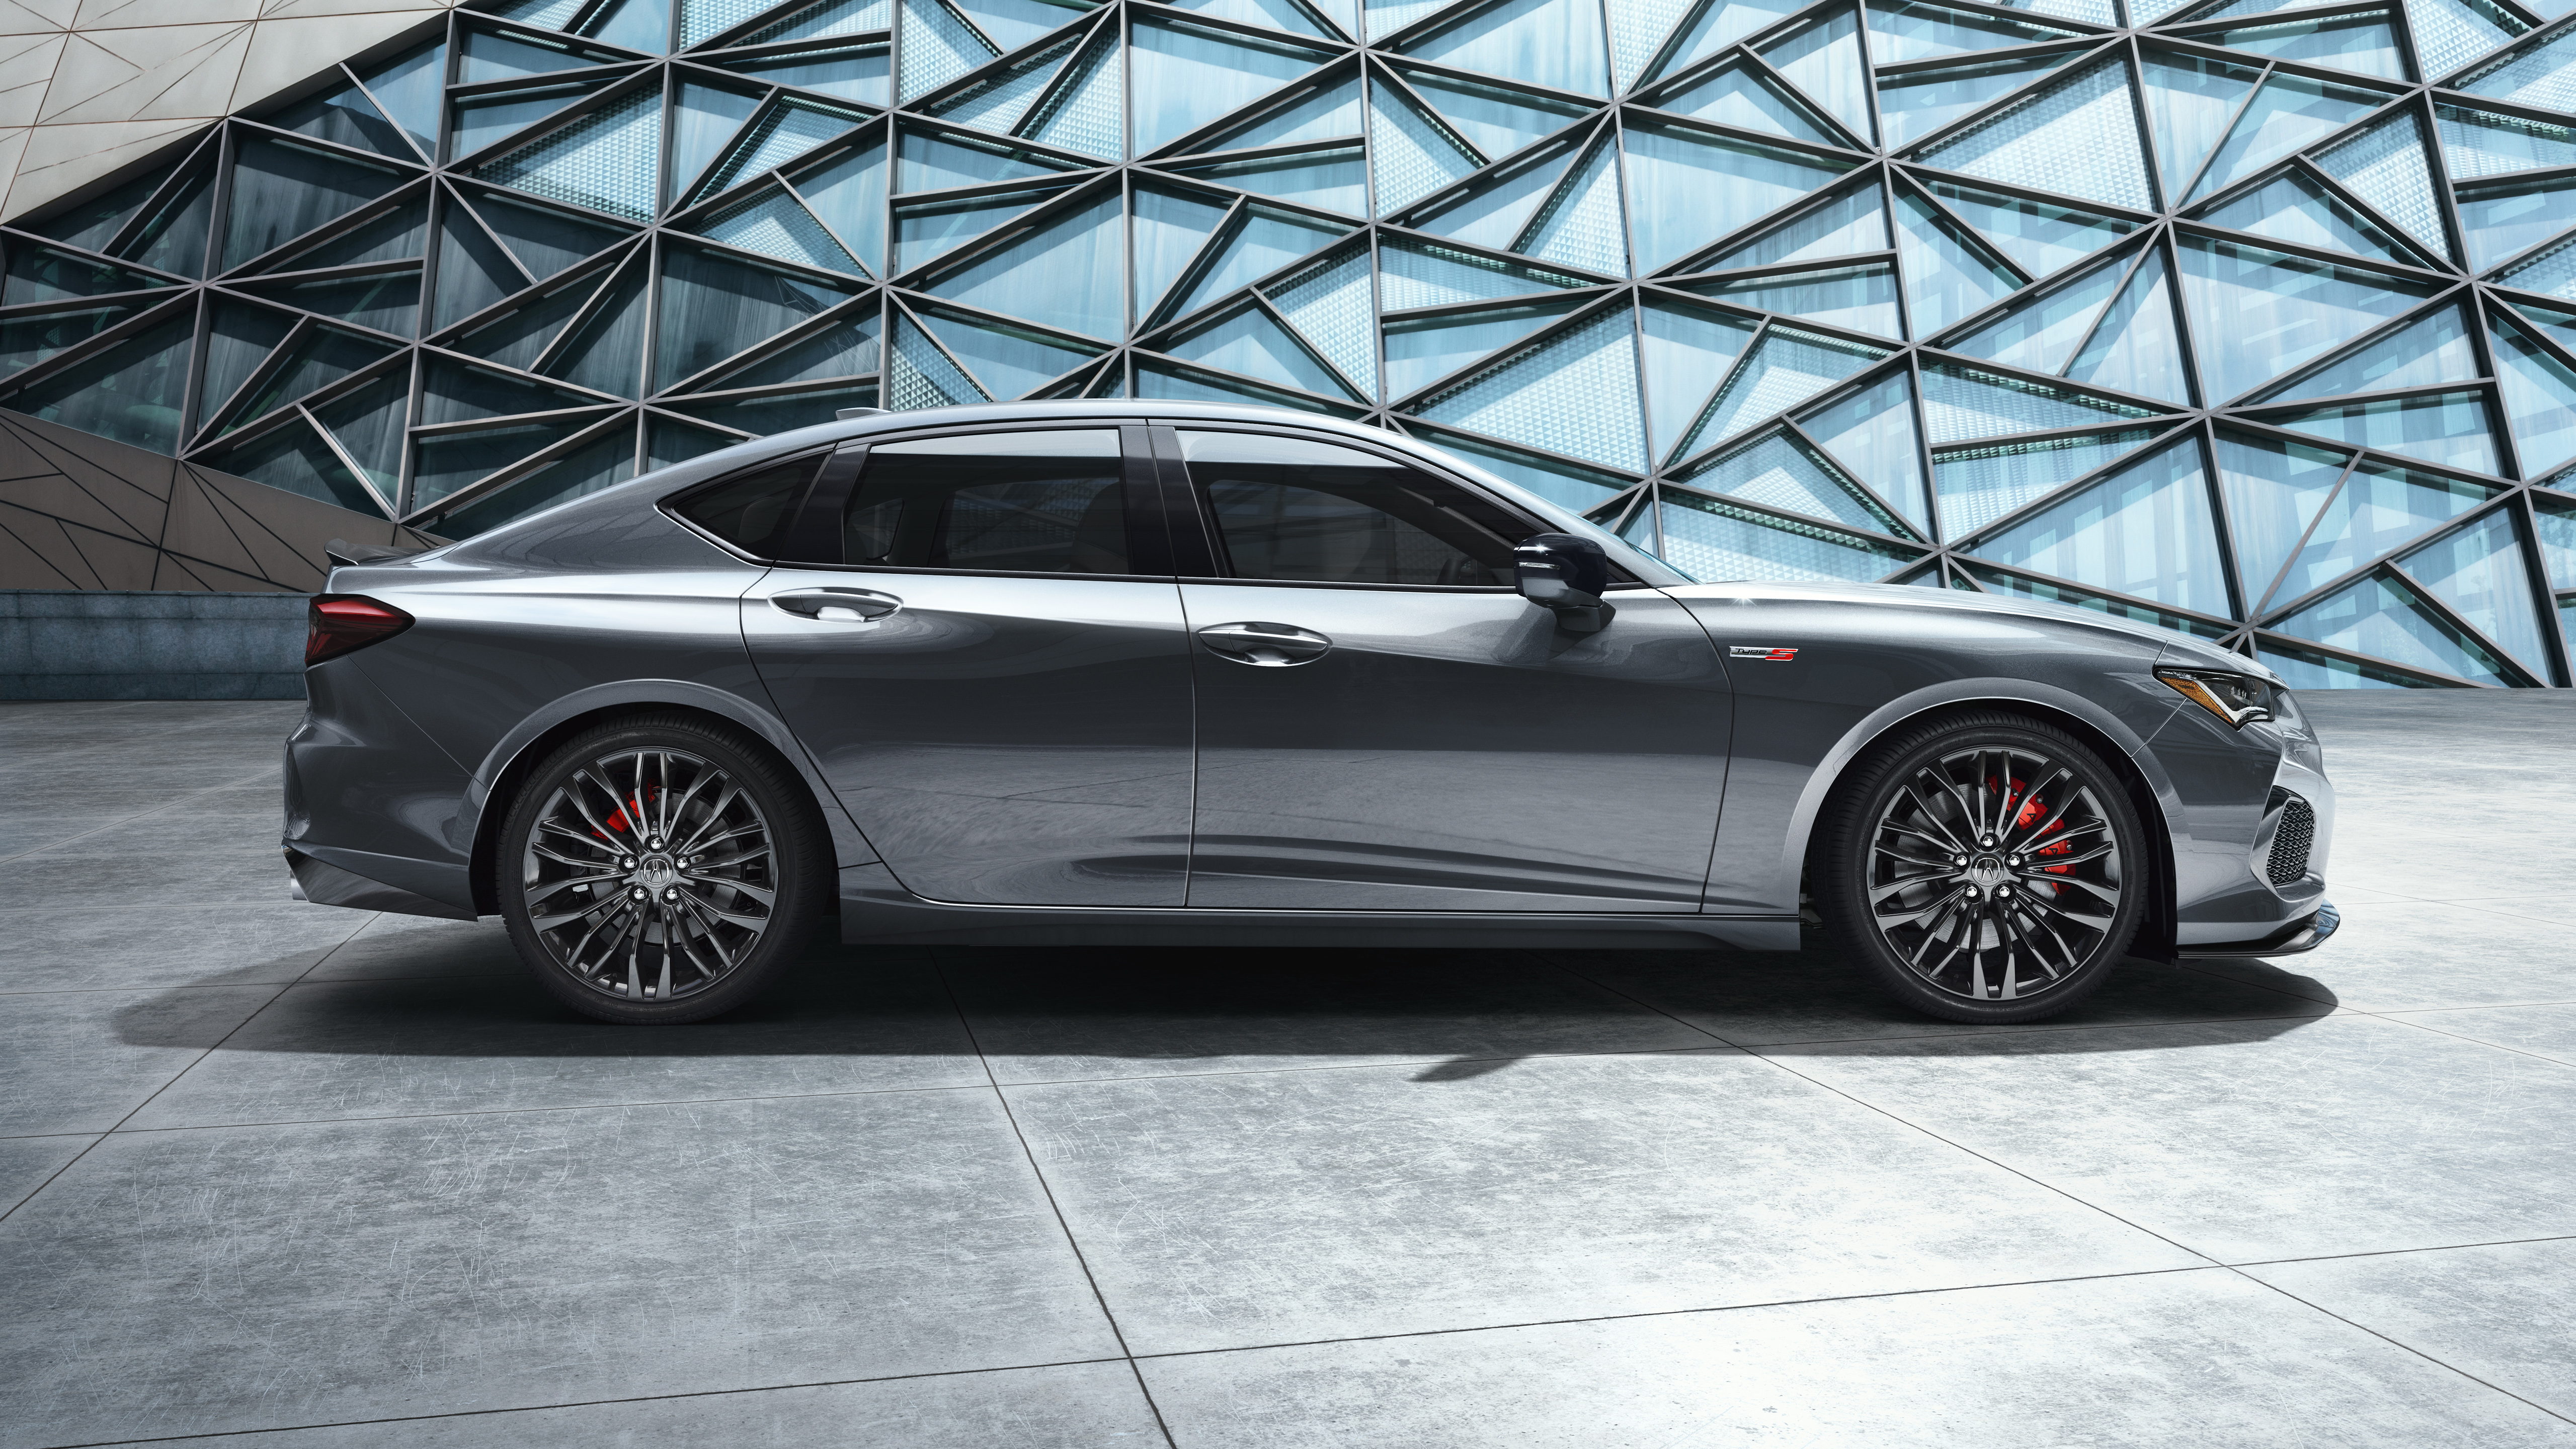 2021 Acura TLX Type S 5K Wallpaper HD Car Wallpapers ID 14896 5120x2880